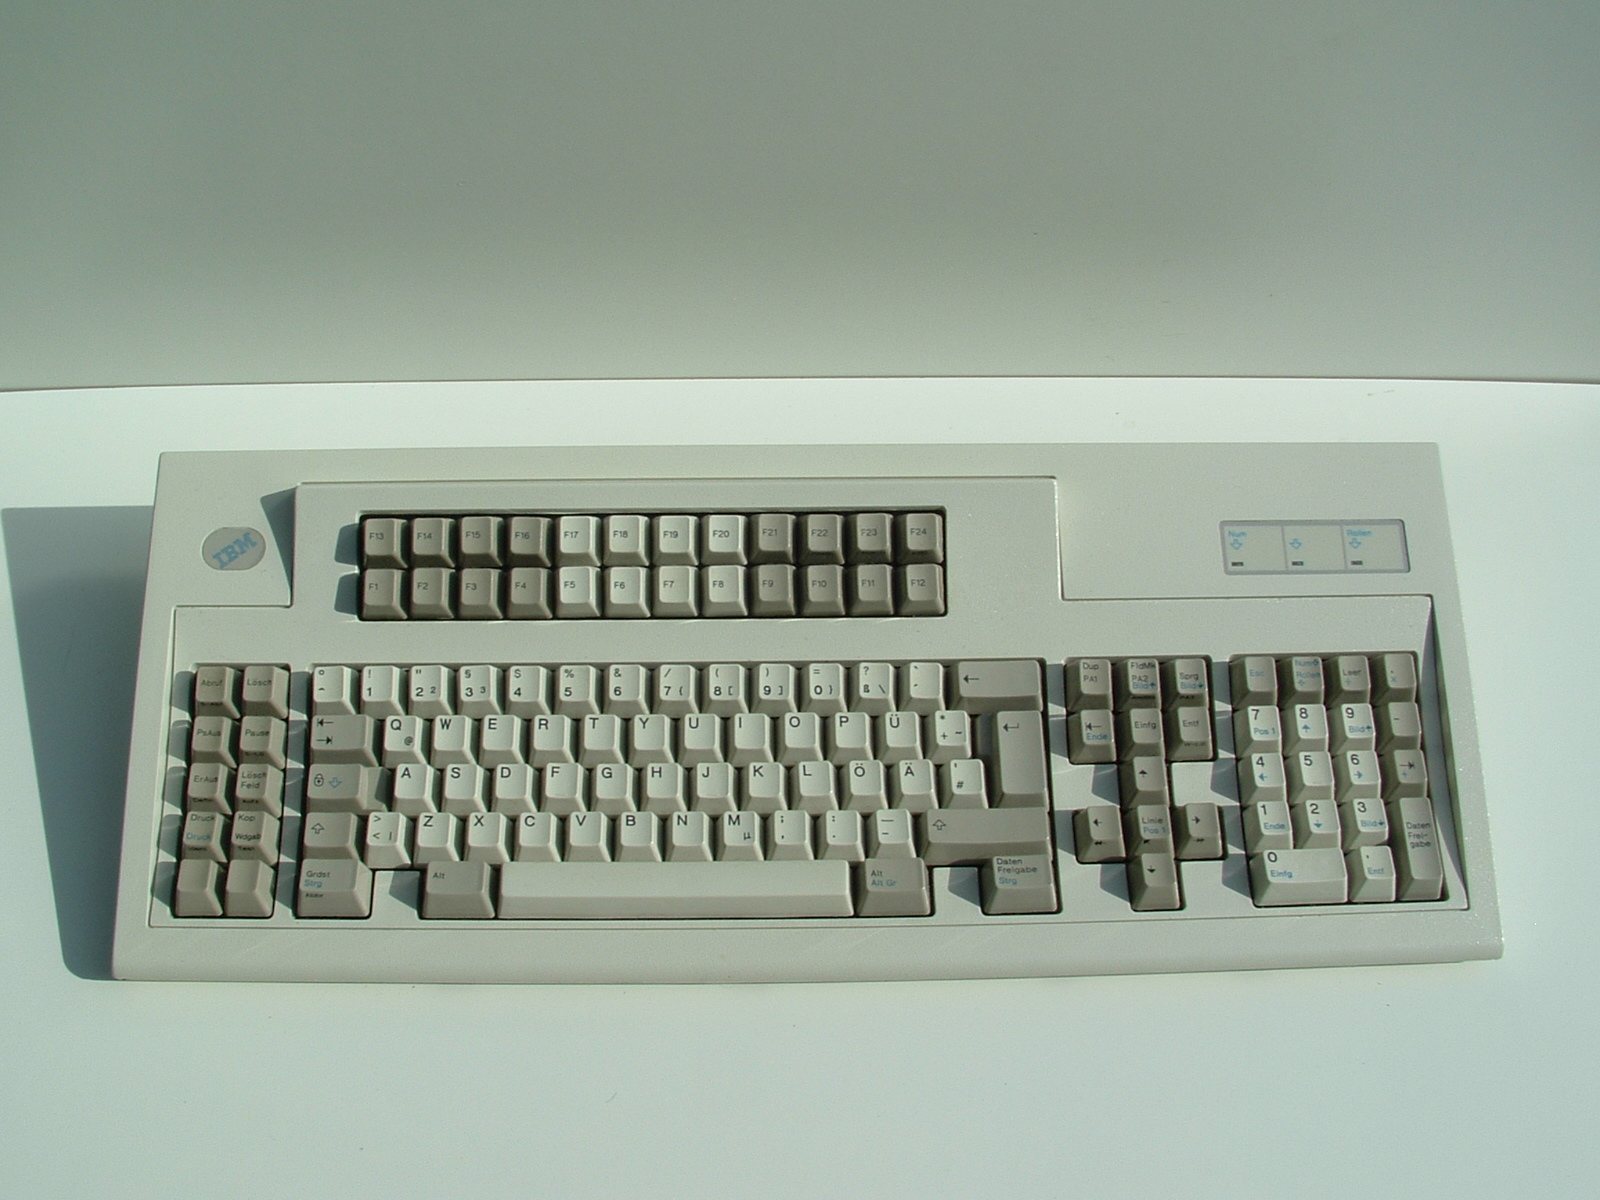 Hello, can anyone recommend a keyboard with extra function keys?